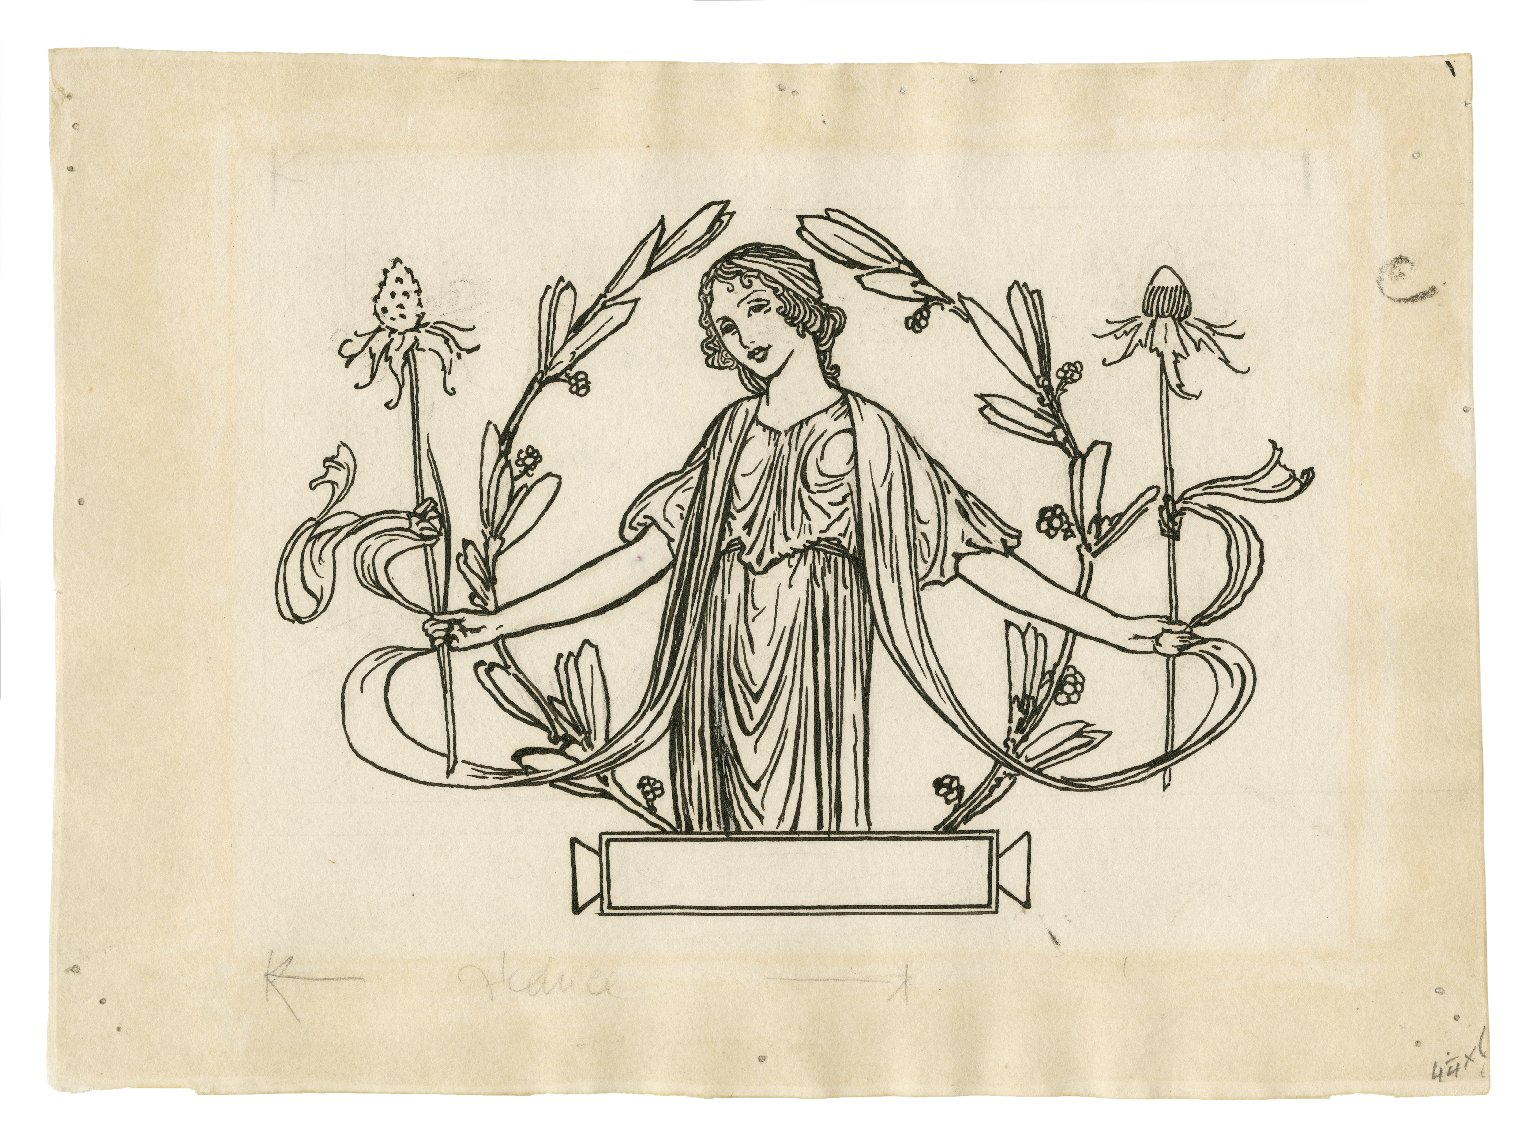 [Decorative tail-piece to page 79 of Bell's edition of The tempest] [graphic] / [Robert Anning Bell].